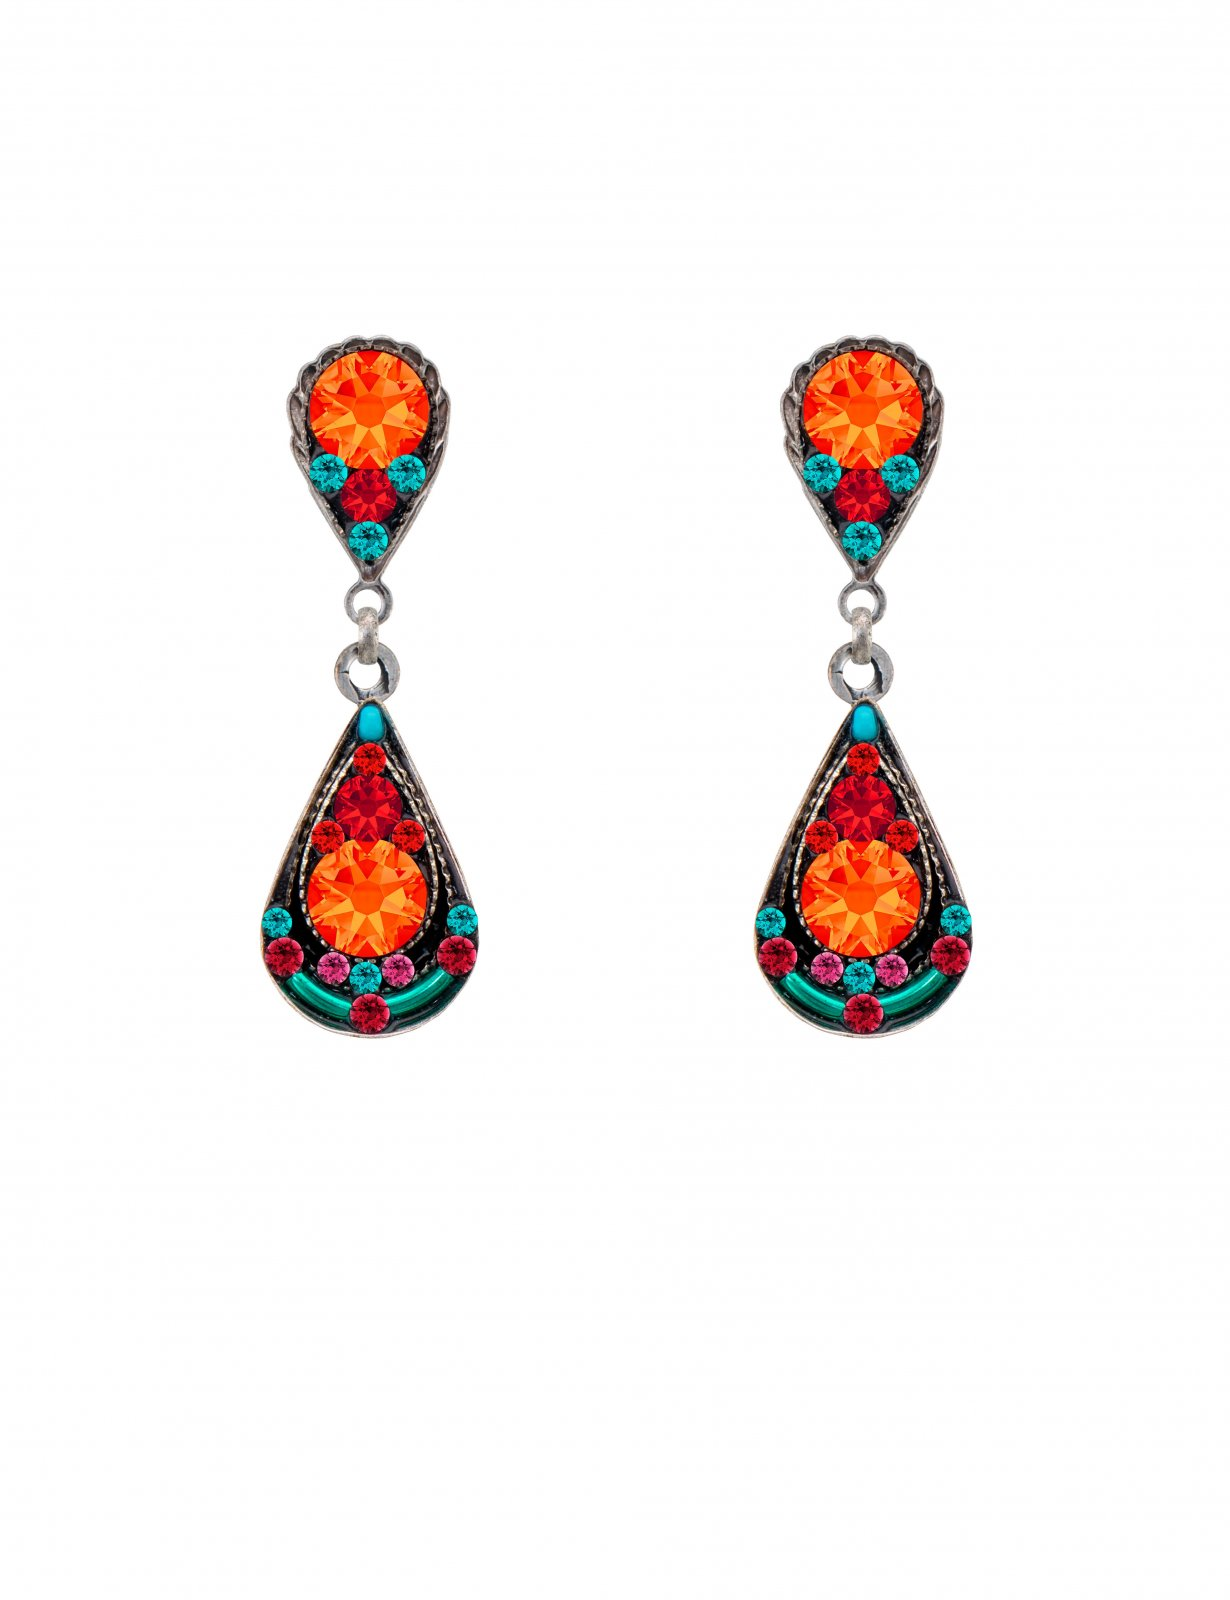 Sparkle Drop earring with post